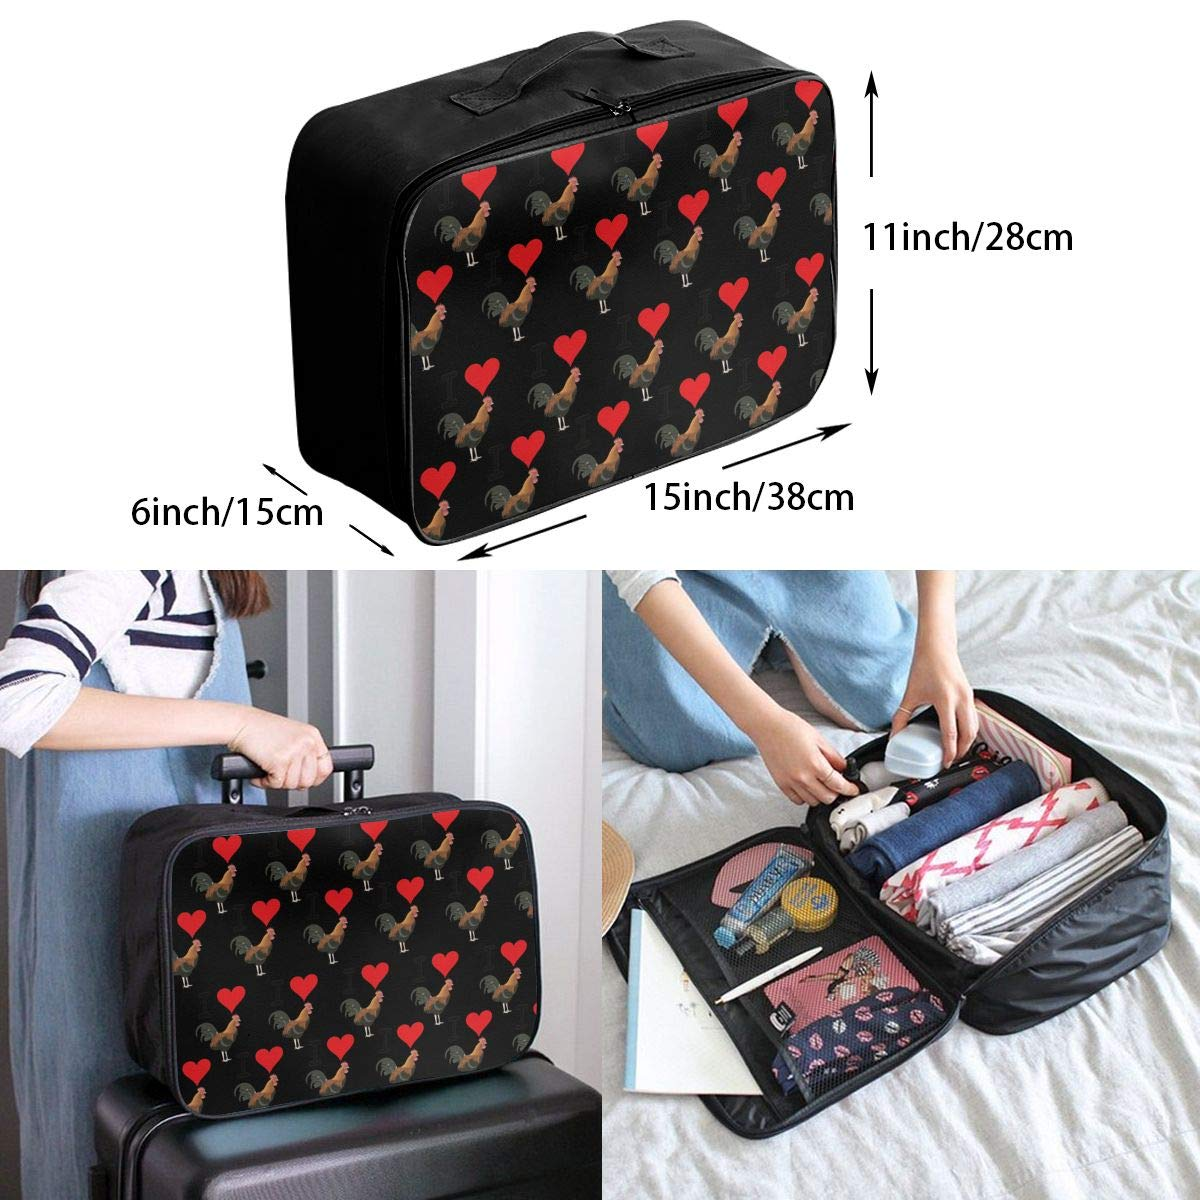 YueLJB I Love Cock Lightweight Large Capacity Portable Luggage Bag Travel Duffel Bag Storage Carry Luggage Duffle Tote Bag